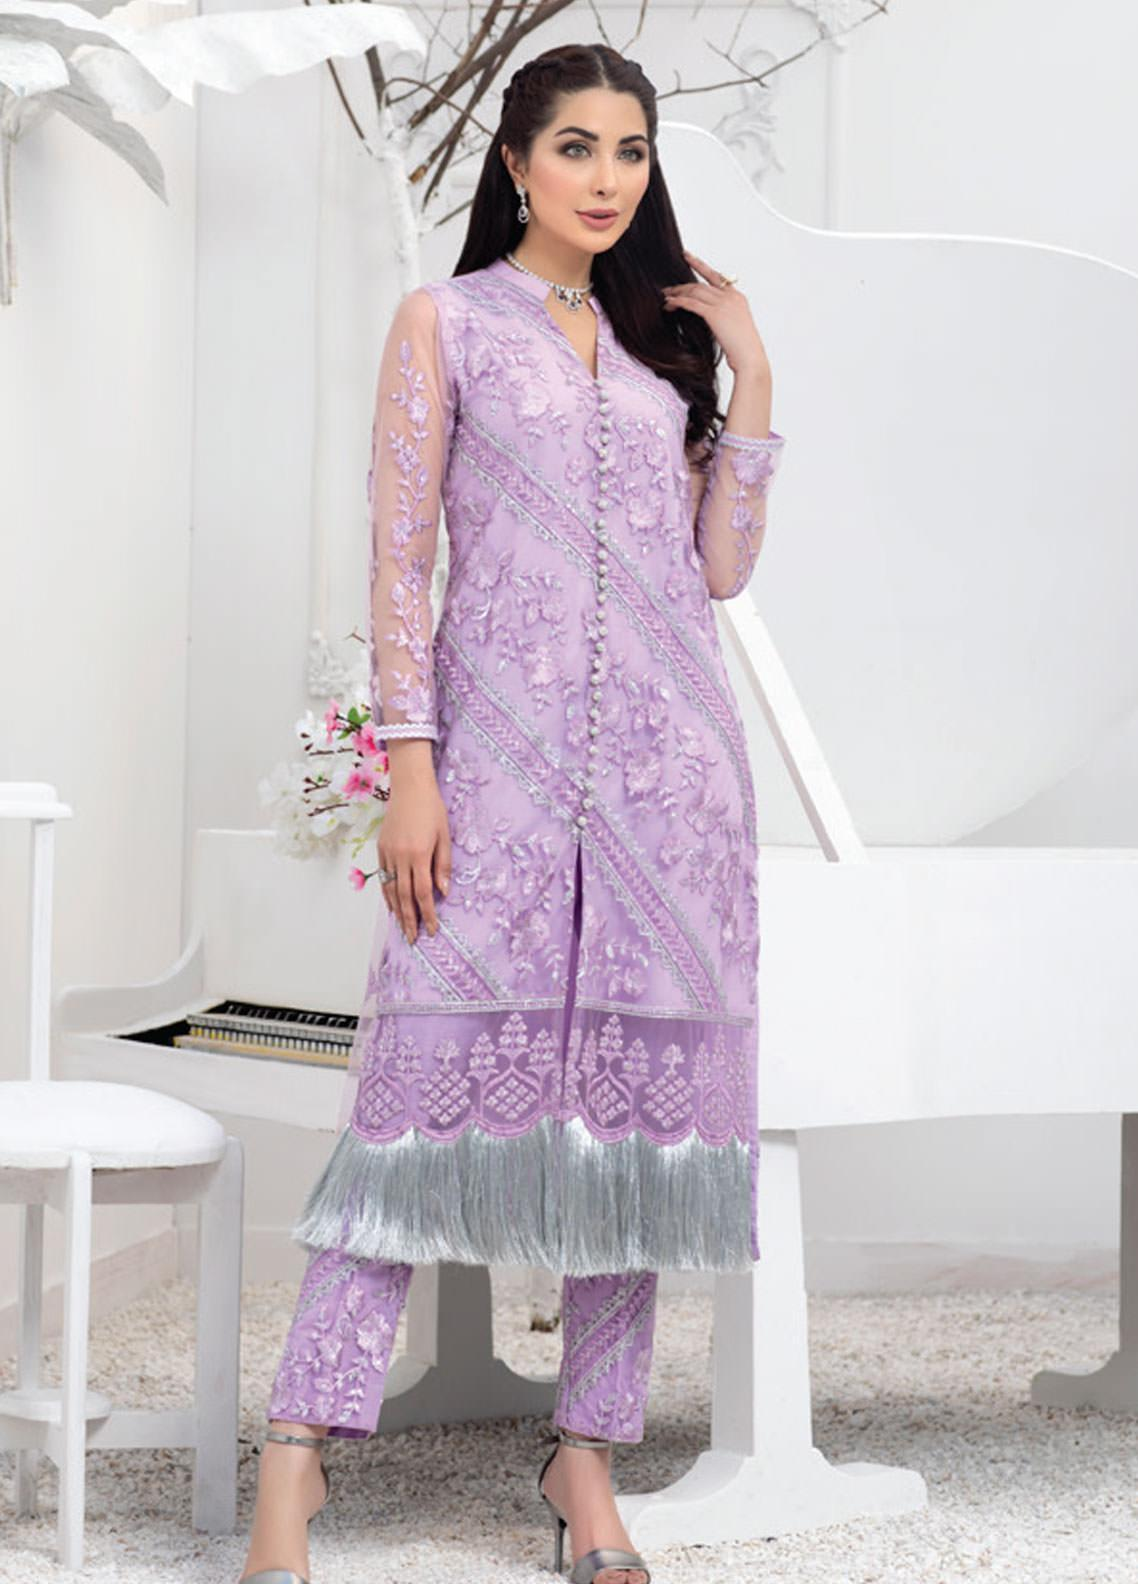 Azure Embroidered Net Unstitched Kurties AZU20F Lavender Vibes 05 - Formal Luxury Collection